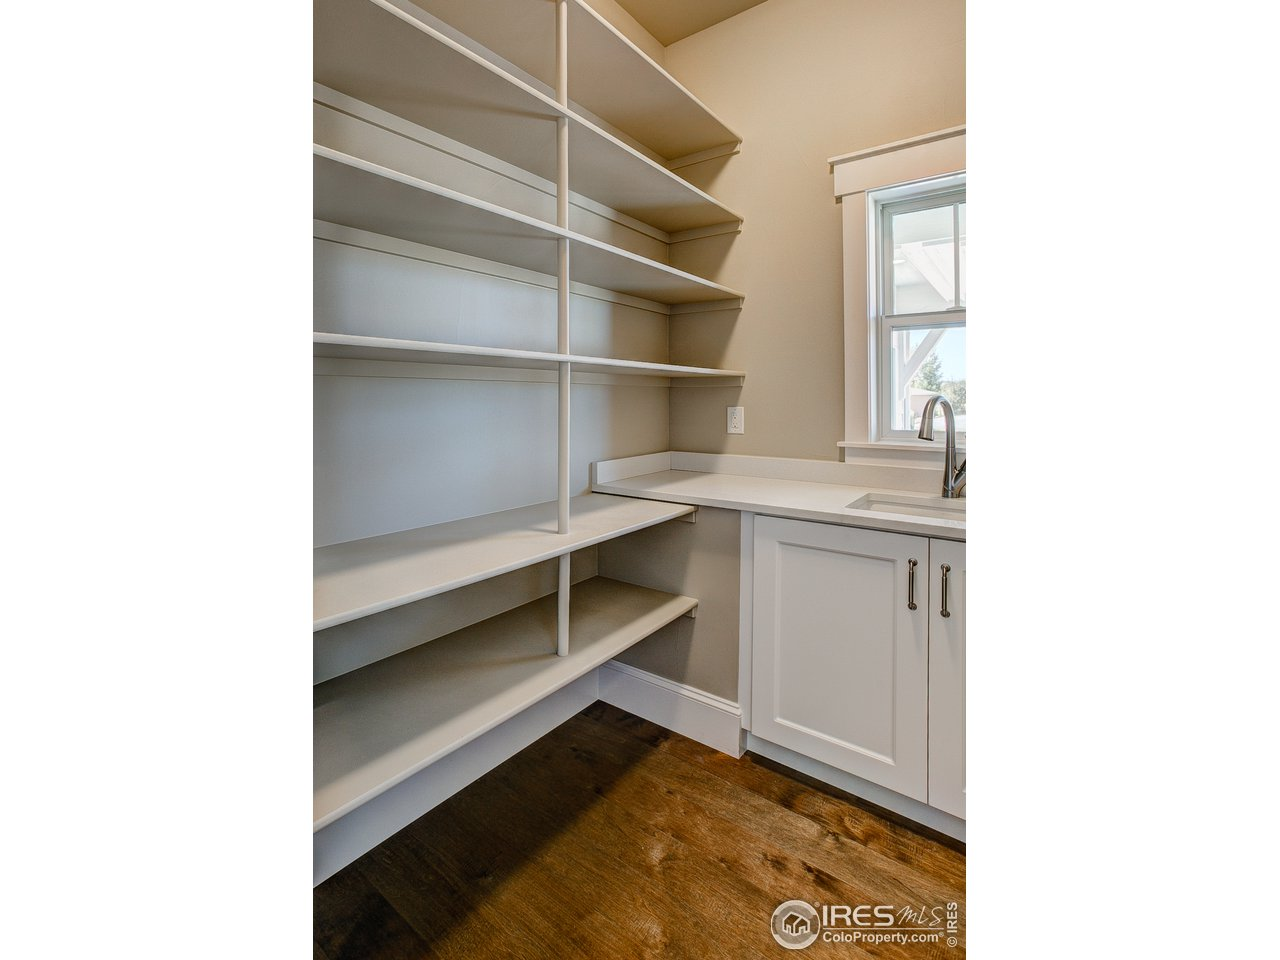 Huge pantry for ample storage